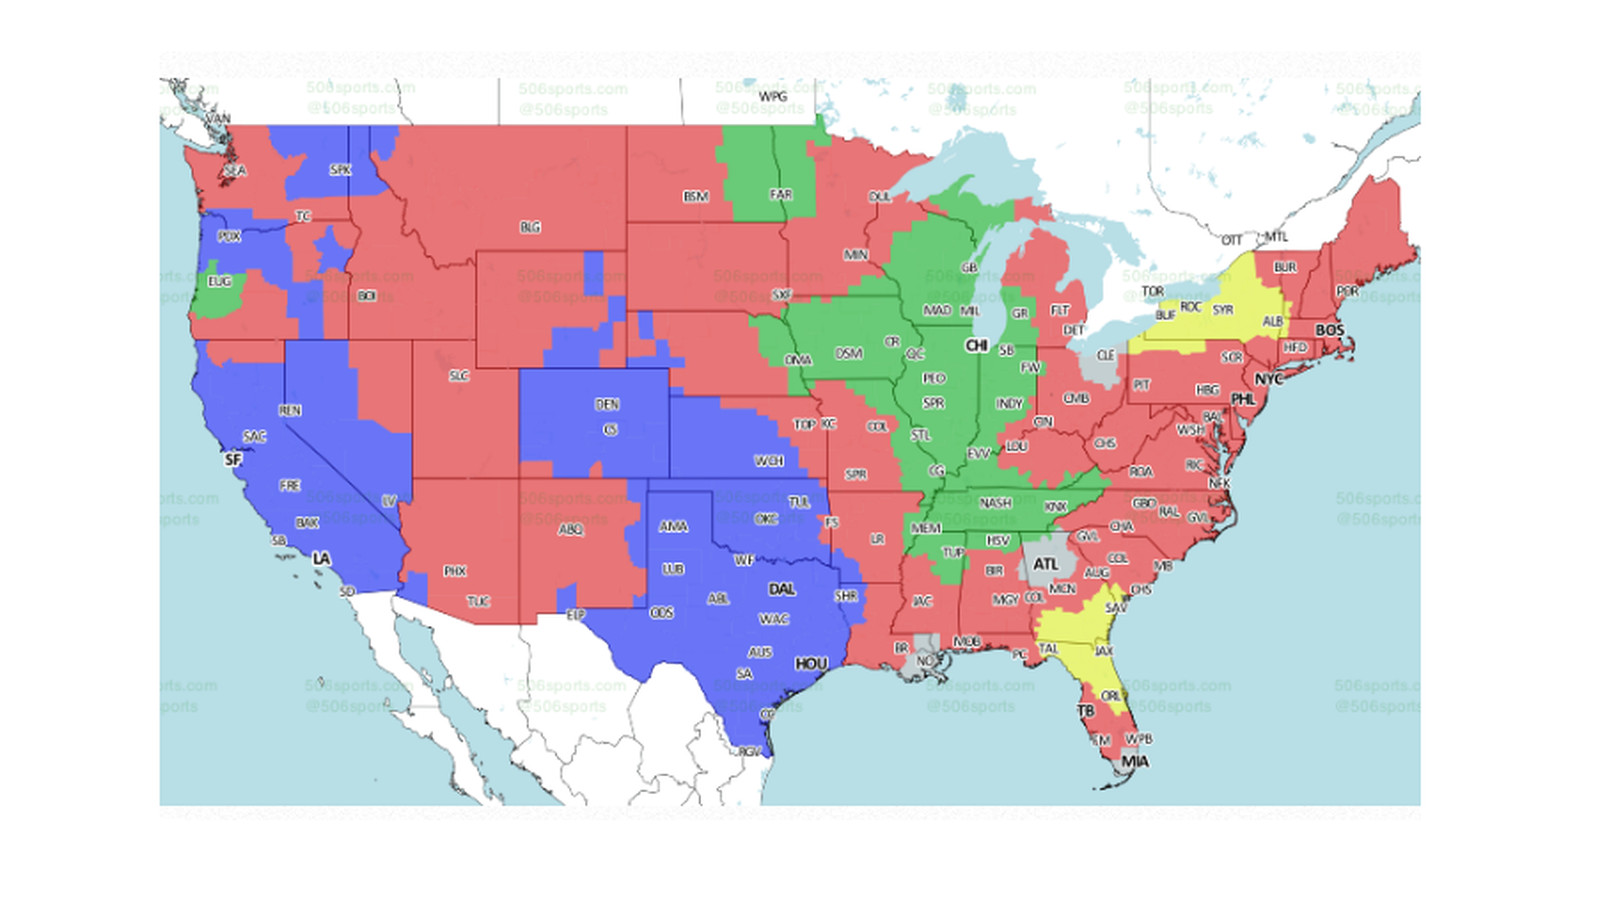 Nfl Week 12 Tv Maps Bengals Vs Ravens Available For Much Of Country Cincy Jungle